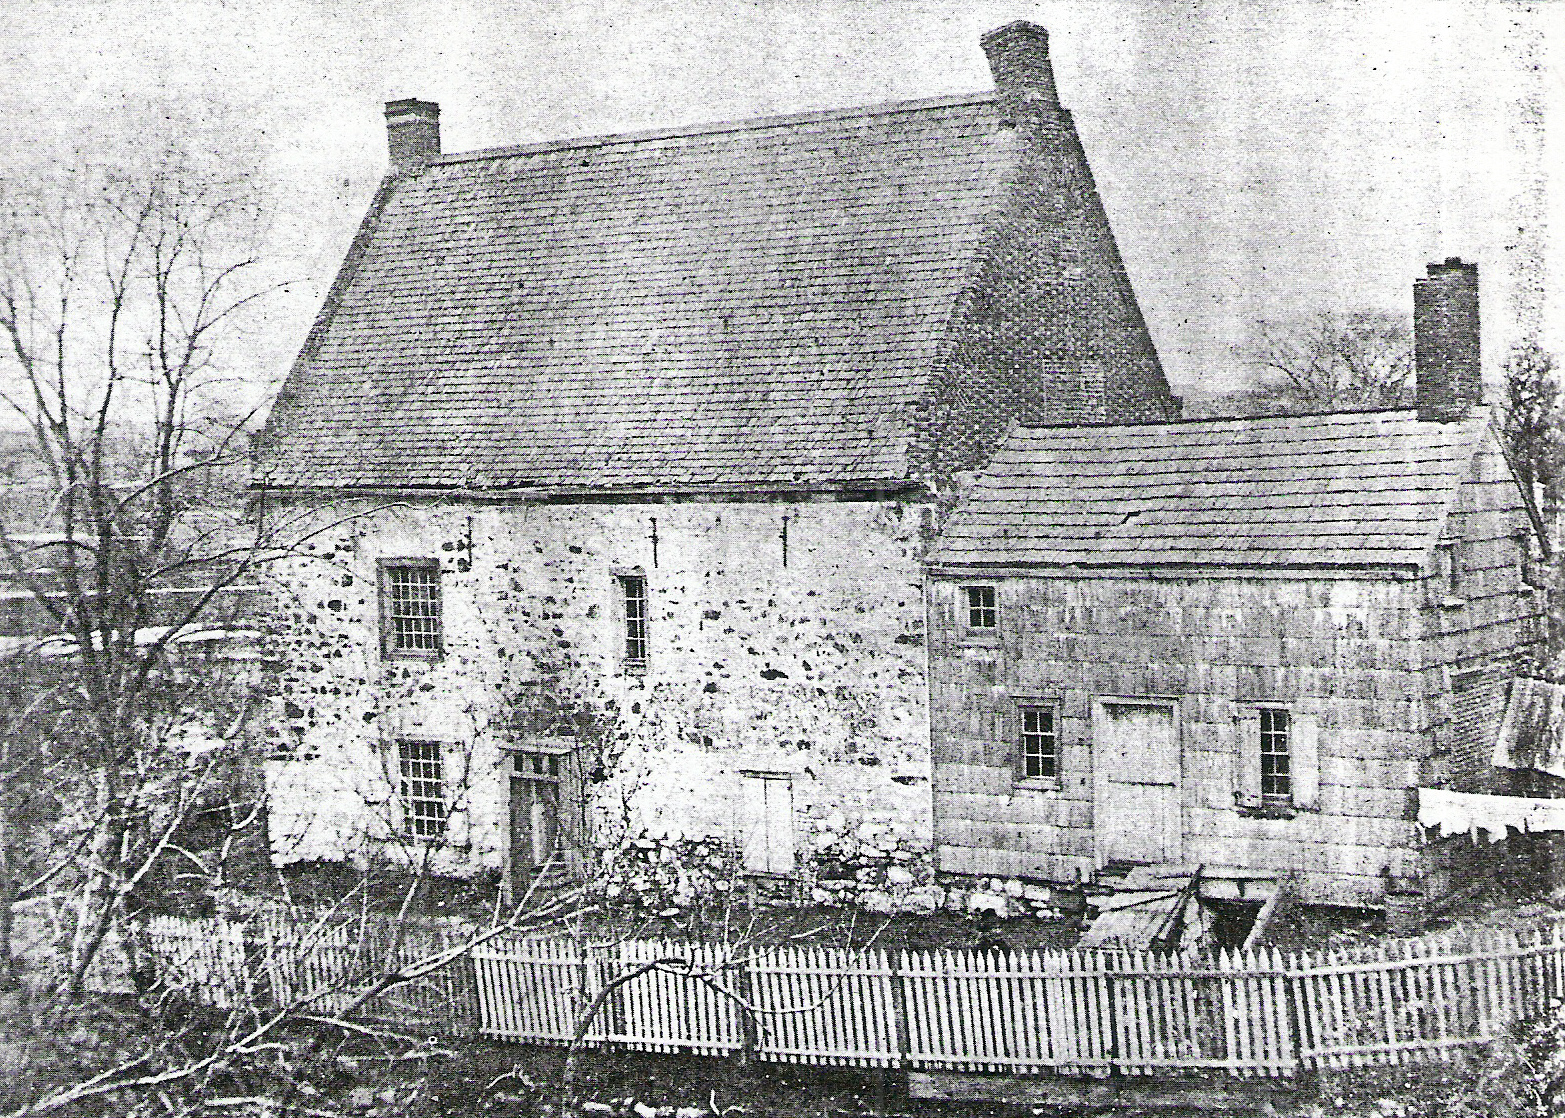 The front of the original Vechte-Cortelyou House, where the Maryland troops commanded by Lord Stirling and Mordecai Gist made two attacks against over two thousand British troops in a rear-guard action that allowed a majority of Stirling's 1,600-strong command to escape. Photo by John L. Pierrepont in the collection of the Brooklyn Historical Society